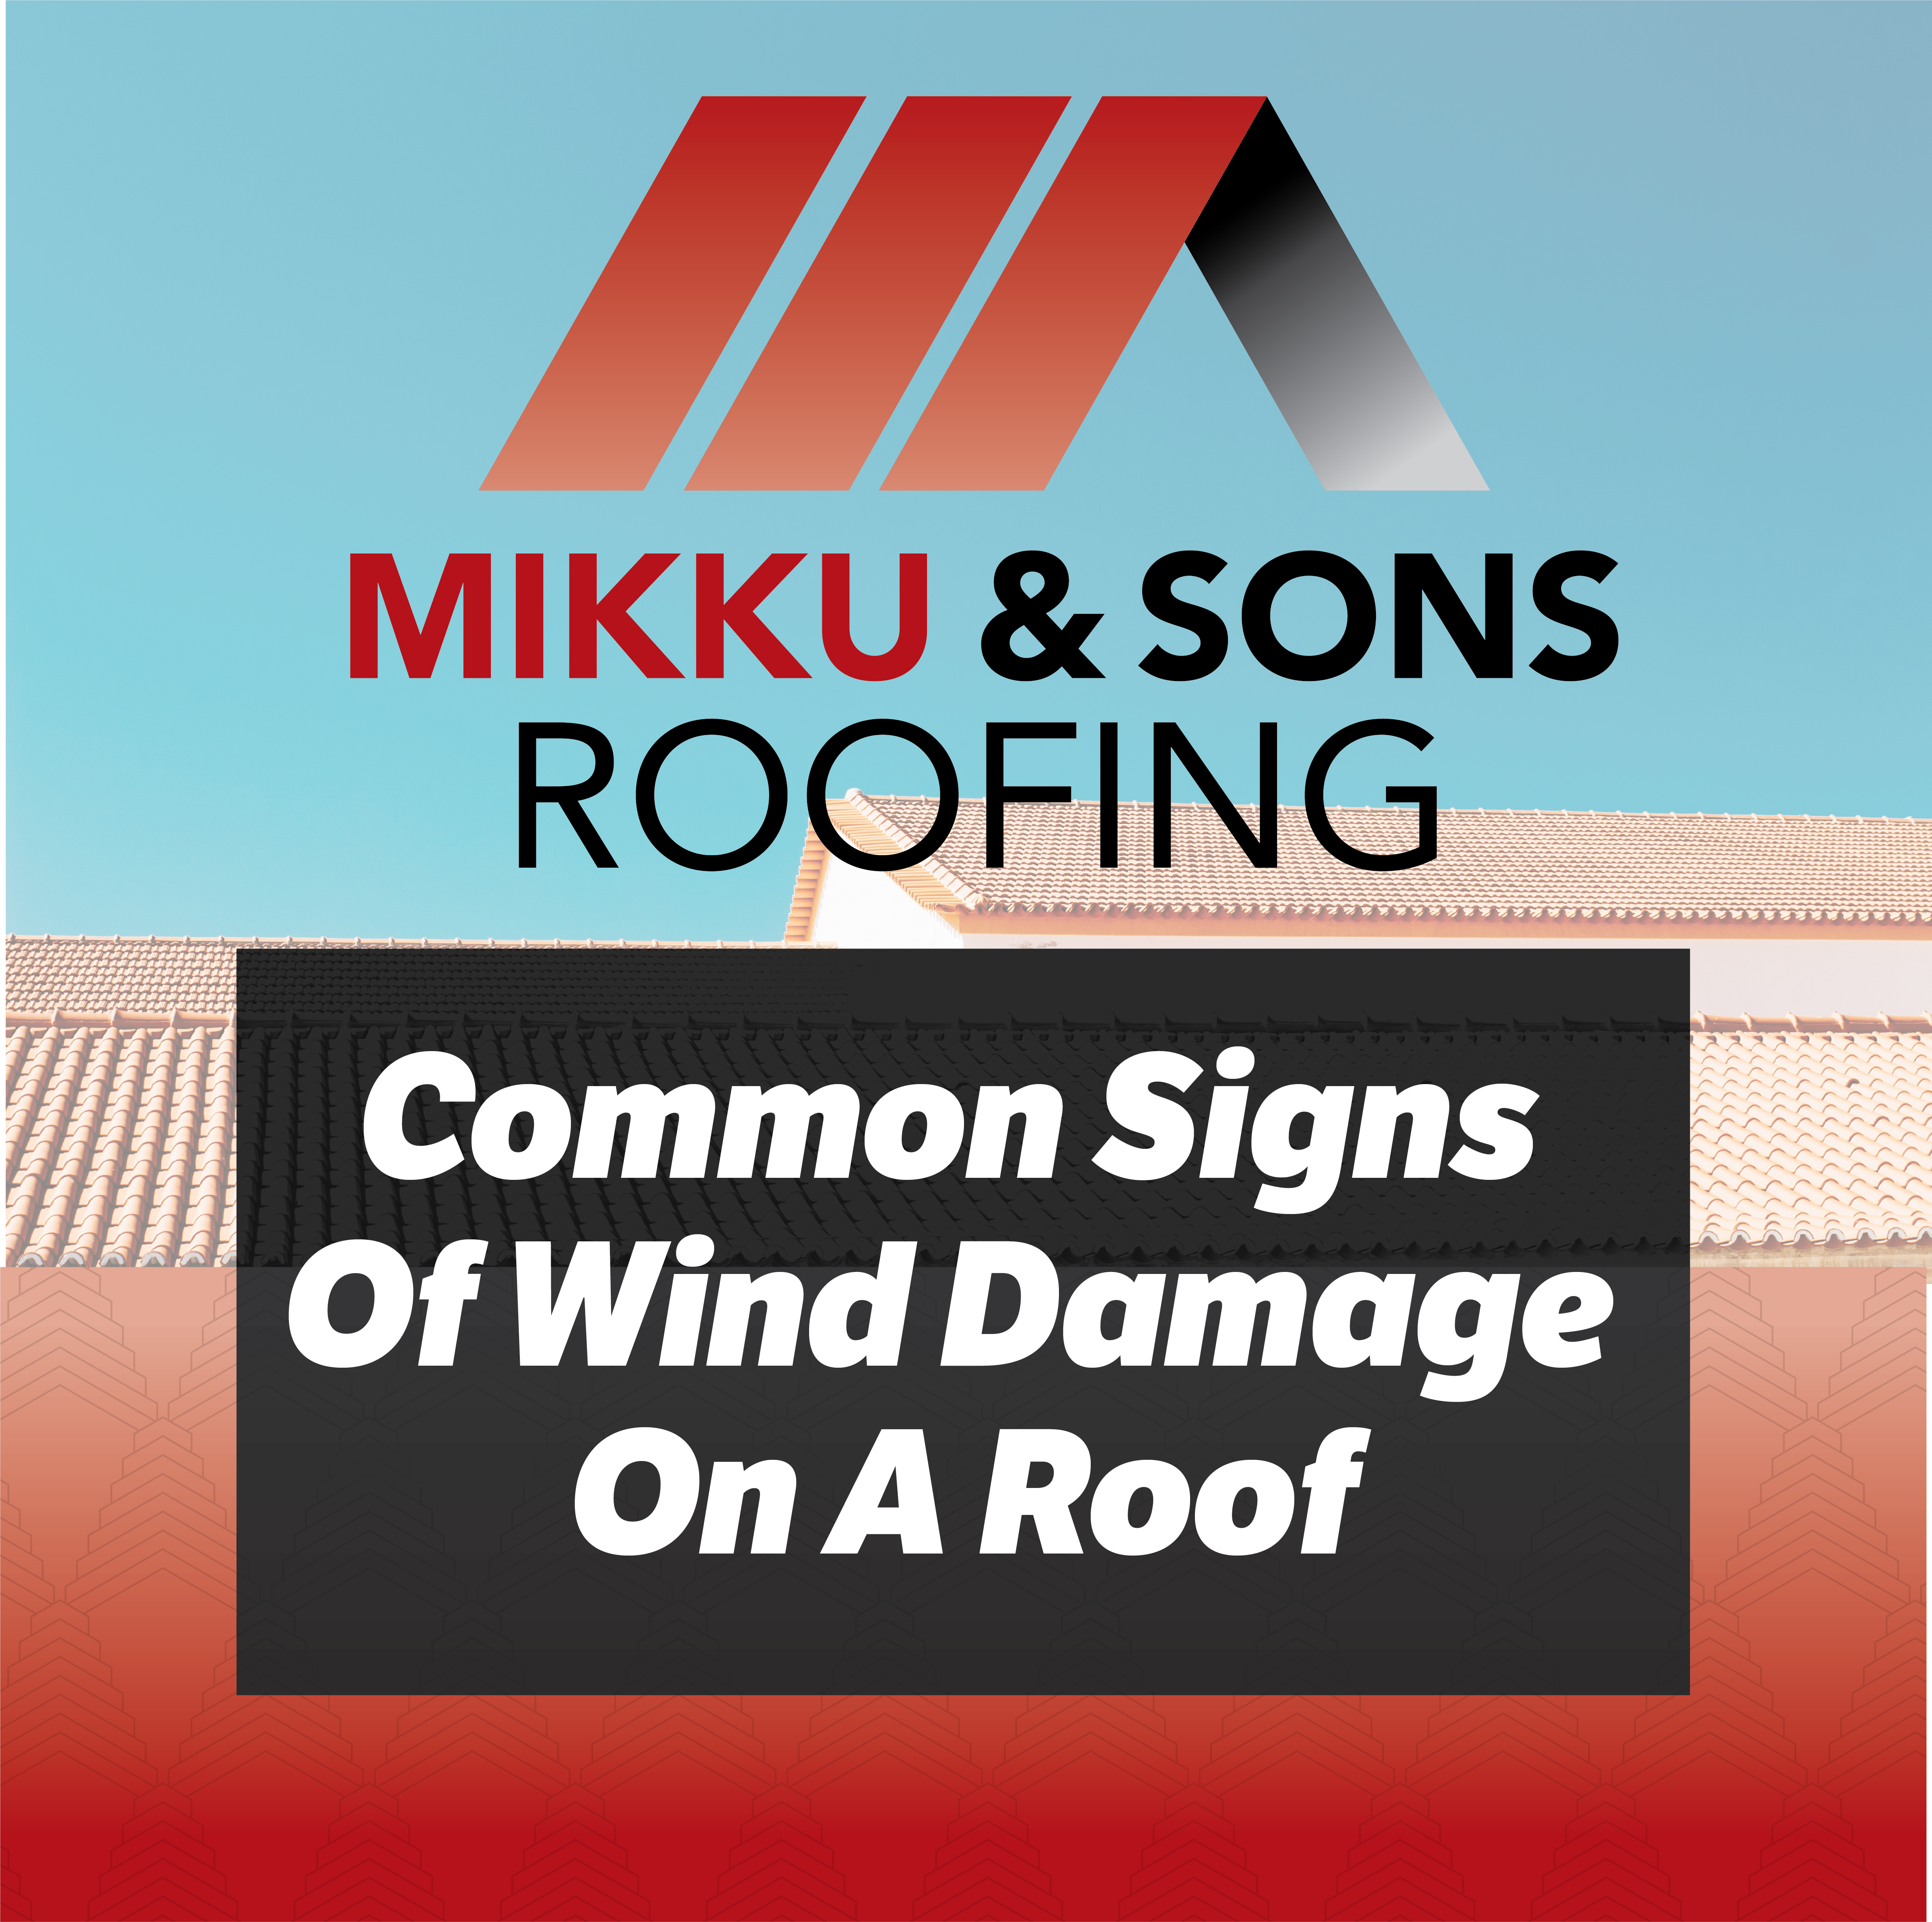 Common Signs Of Wind Damage On A Roof